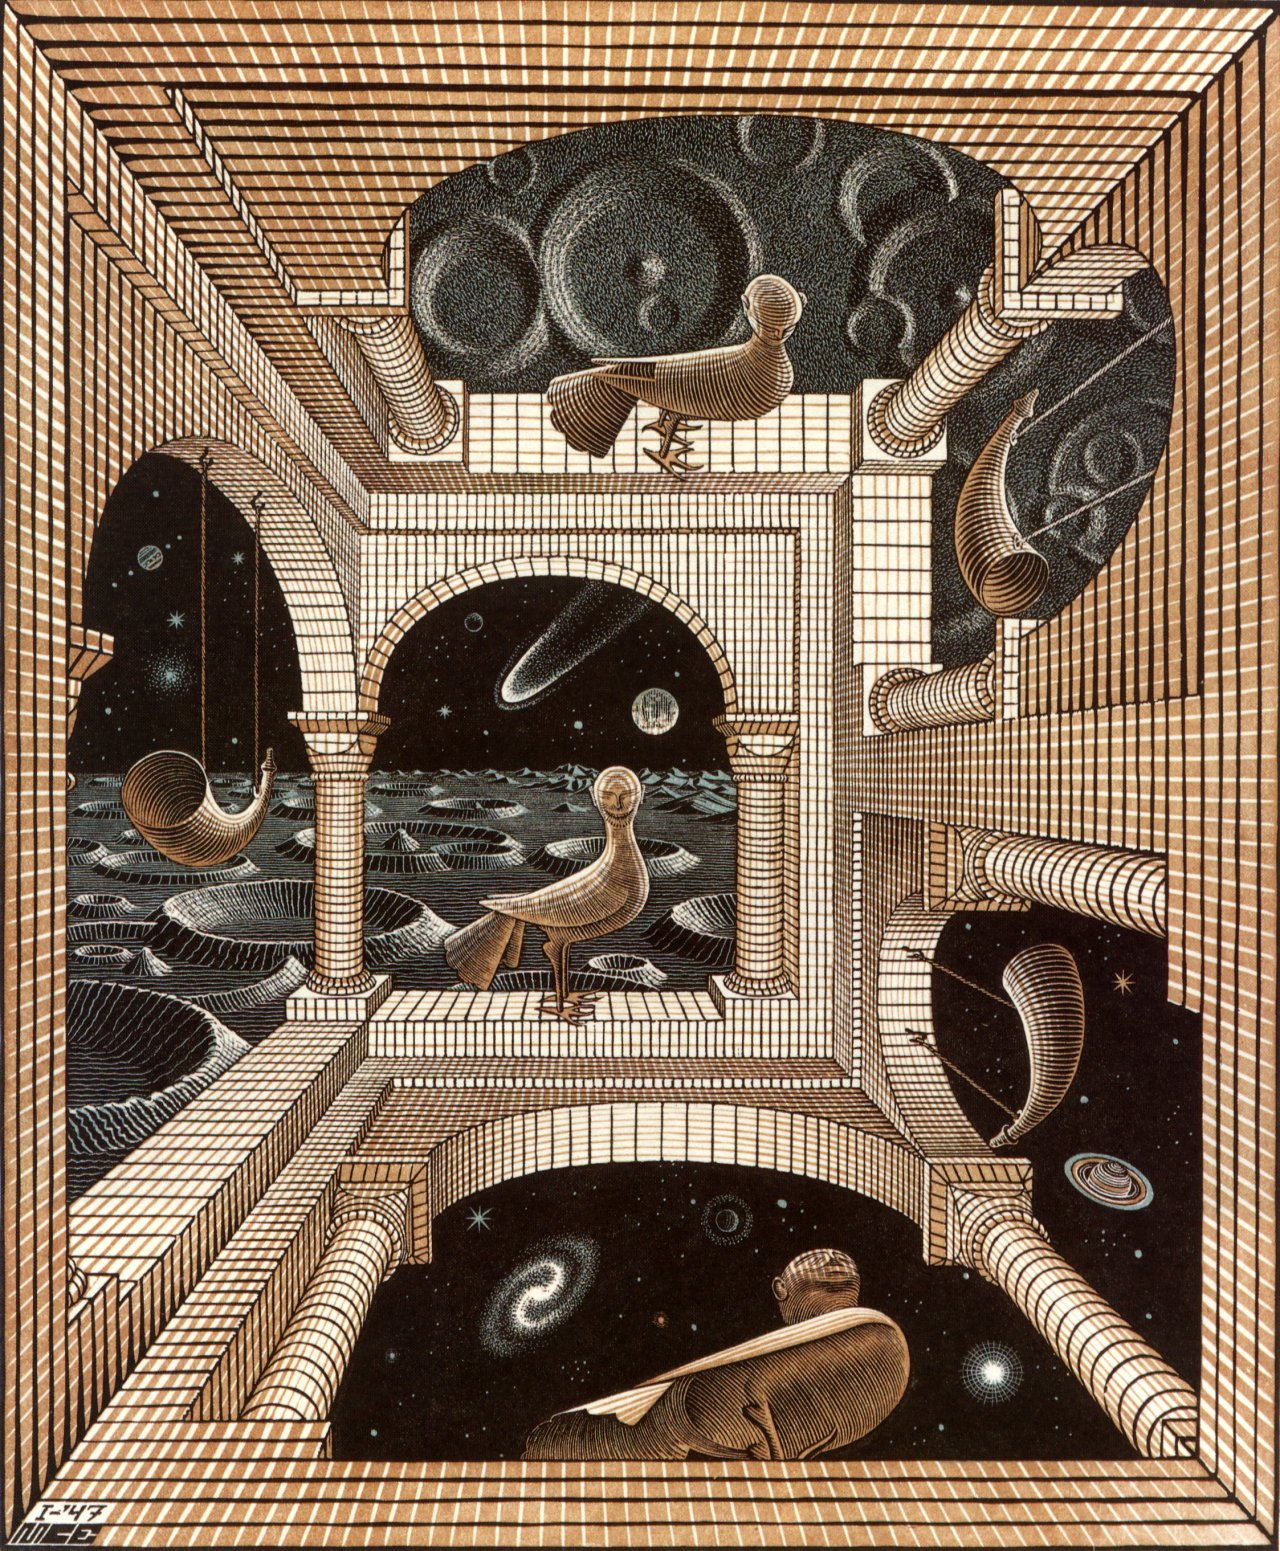 https://i1.wp.com/uploads1.wikipaintings.org/images/m-c-escher/other-world.jpg